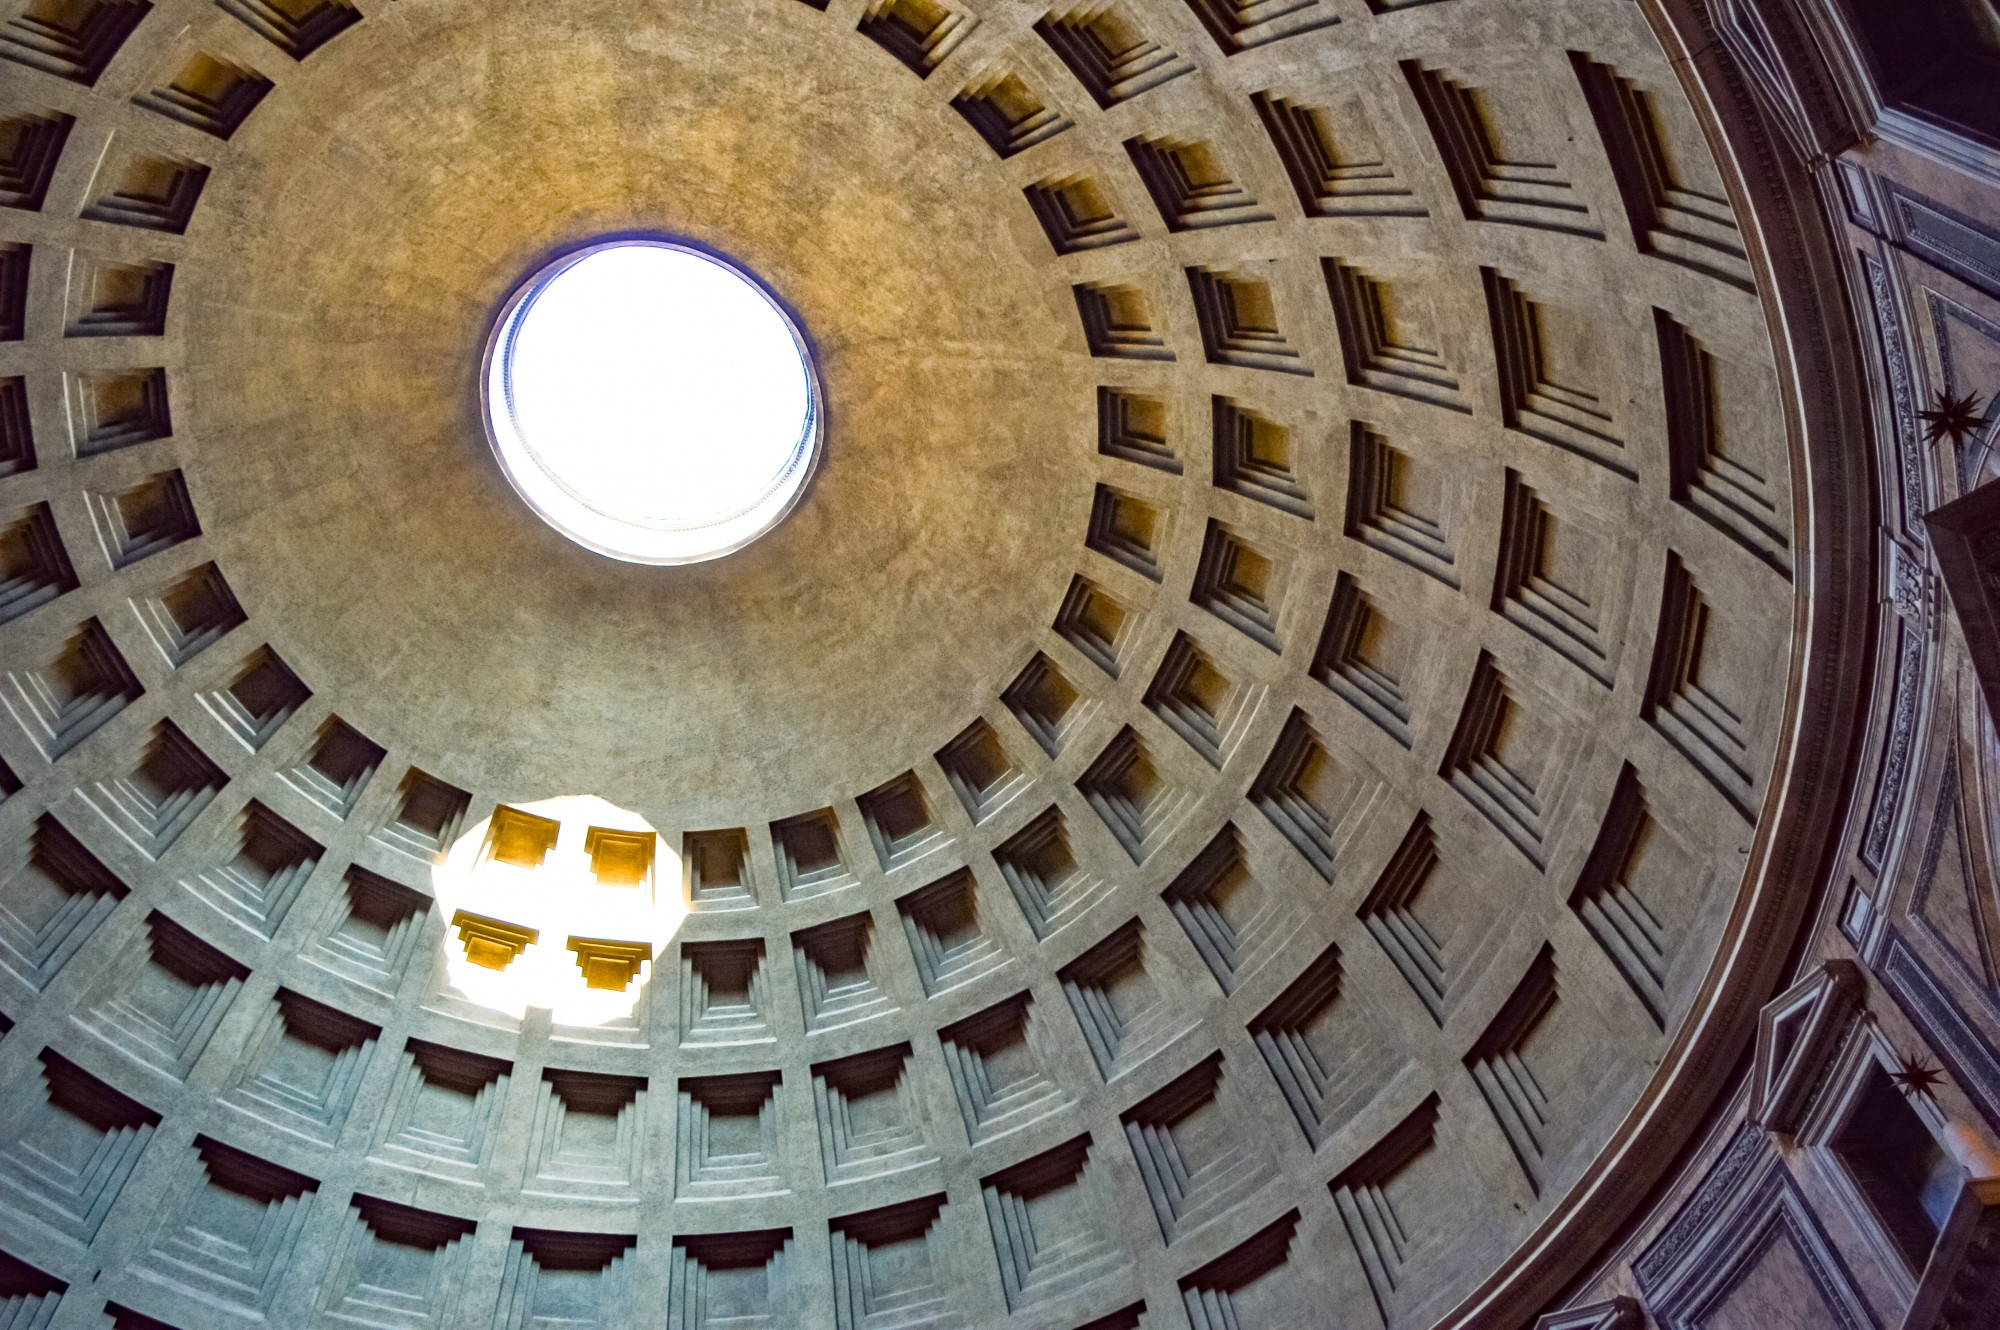 The Oculus at the Pantheon, Rome